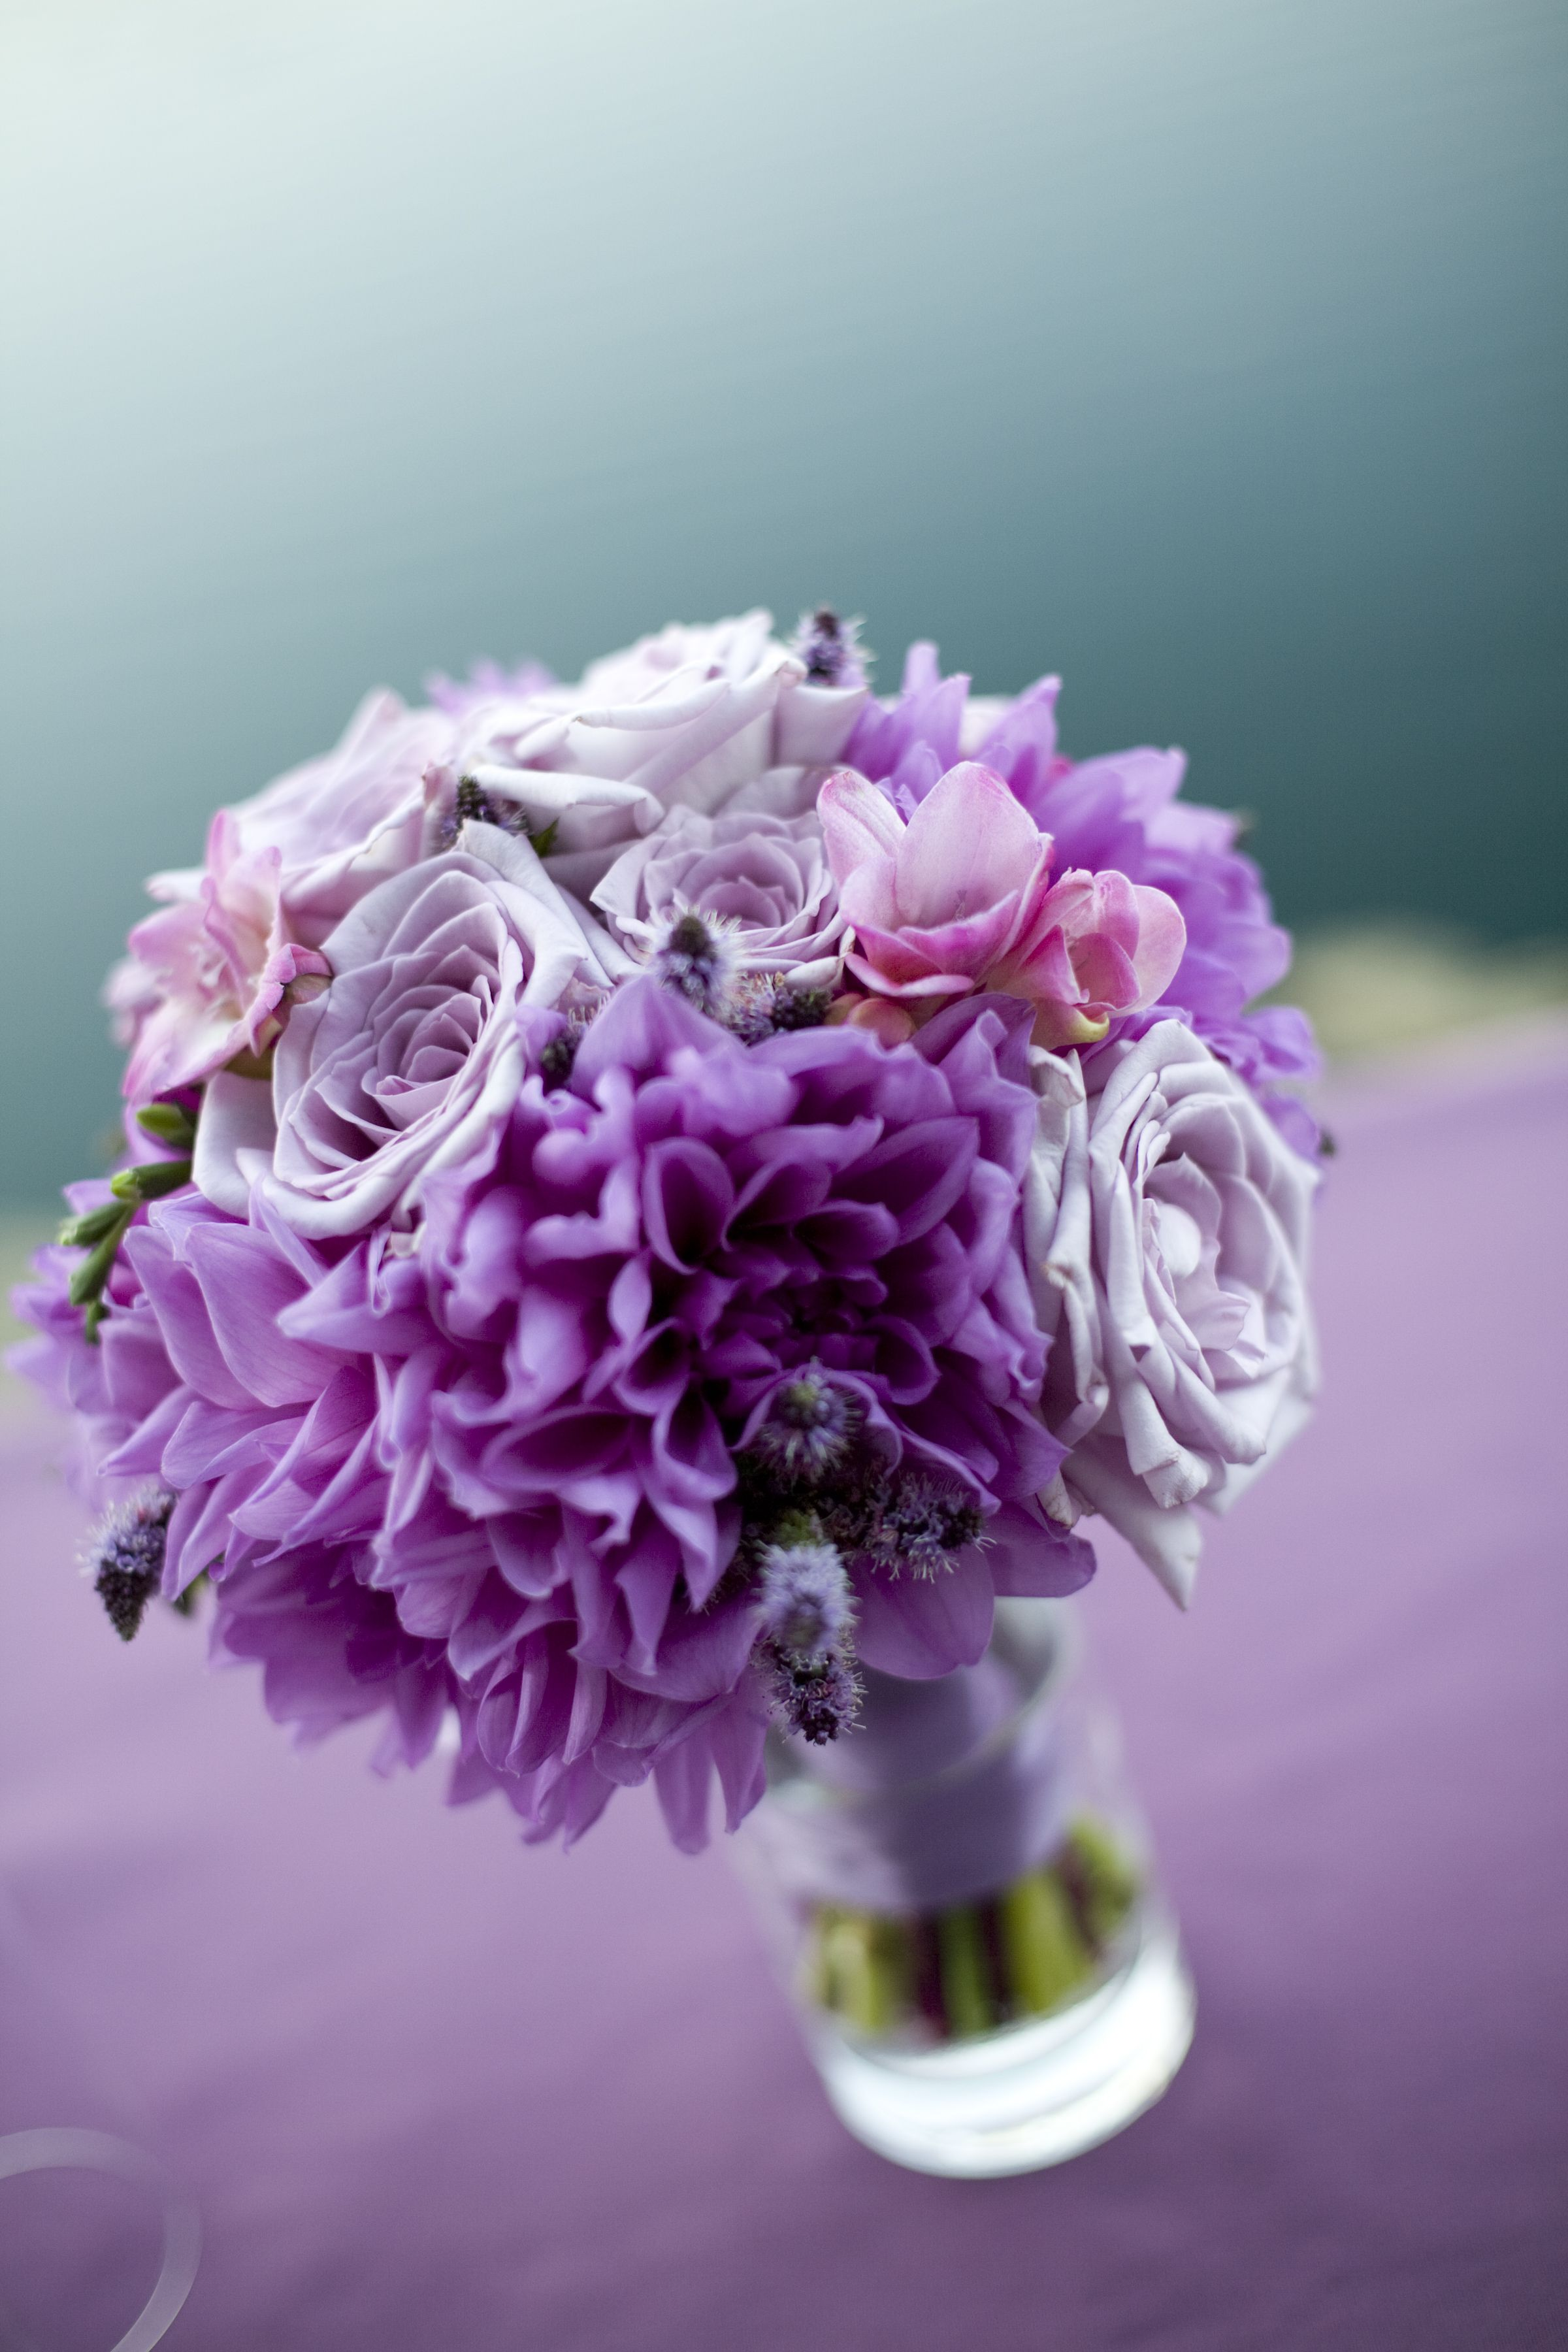 Roses In Garden: Bridesmaid Bouquet In Vase, In Lavenders And Purples